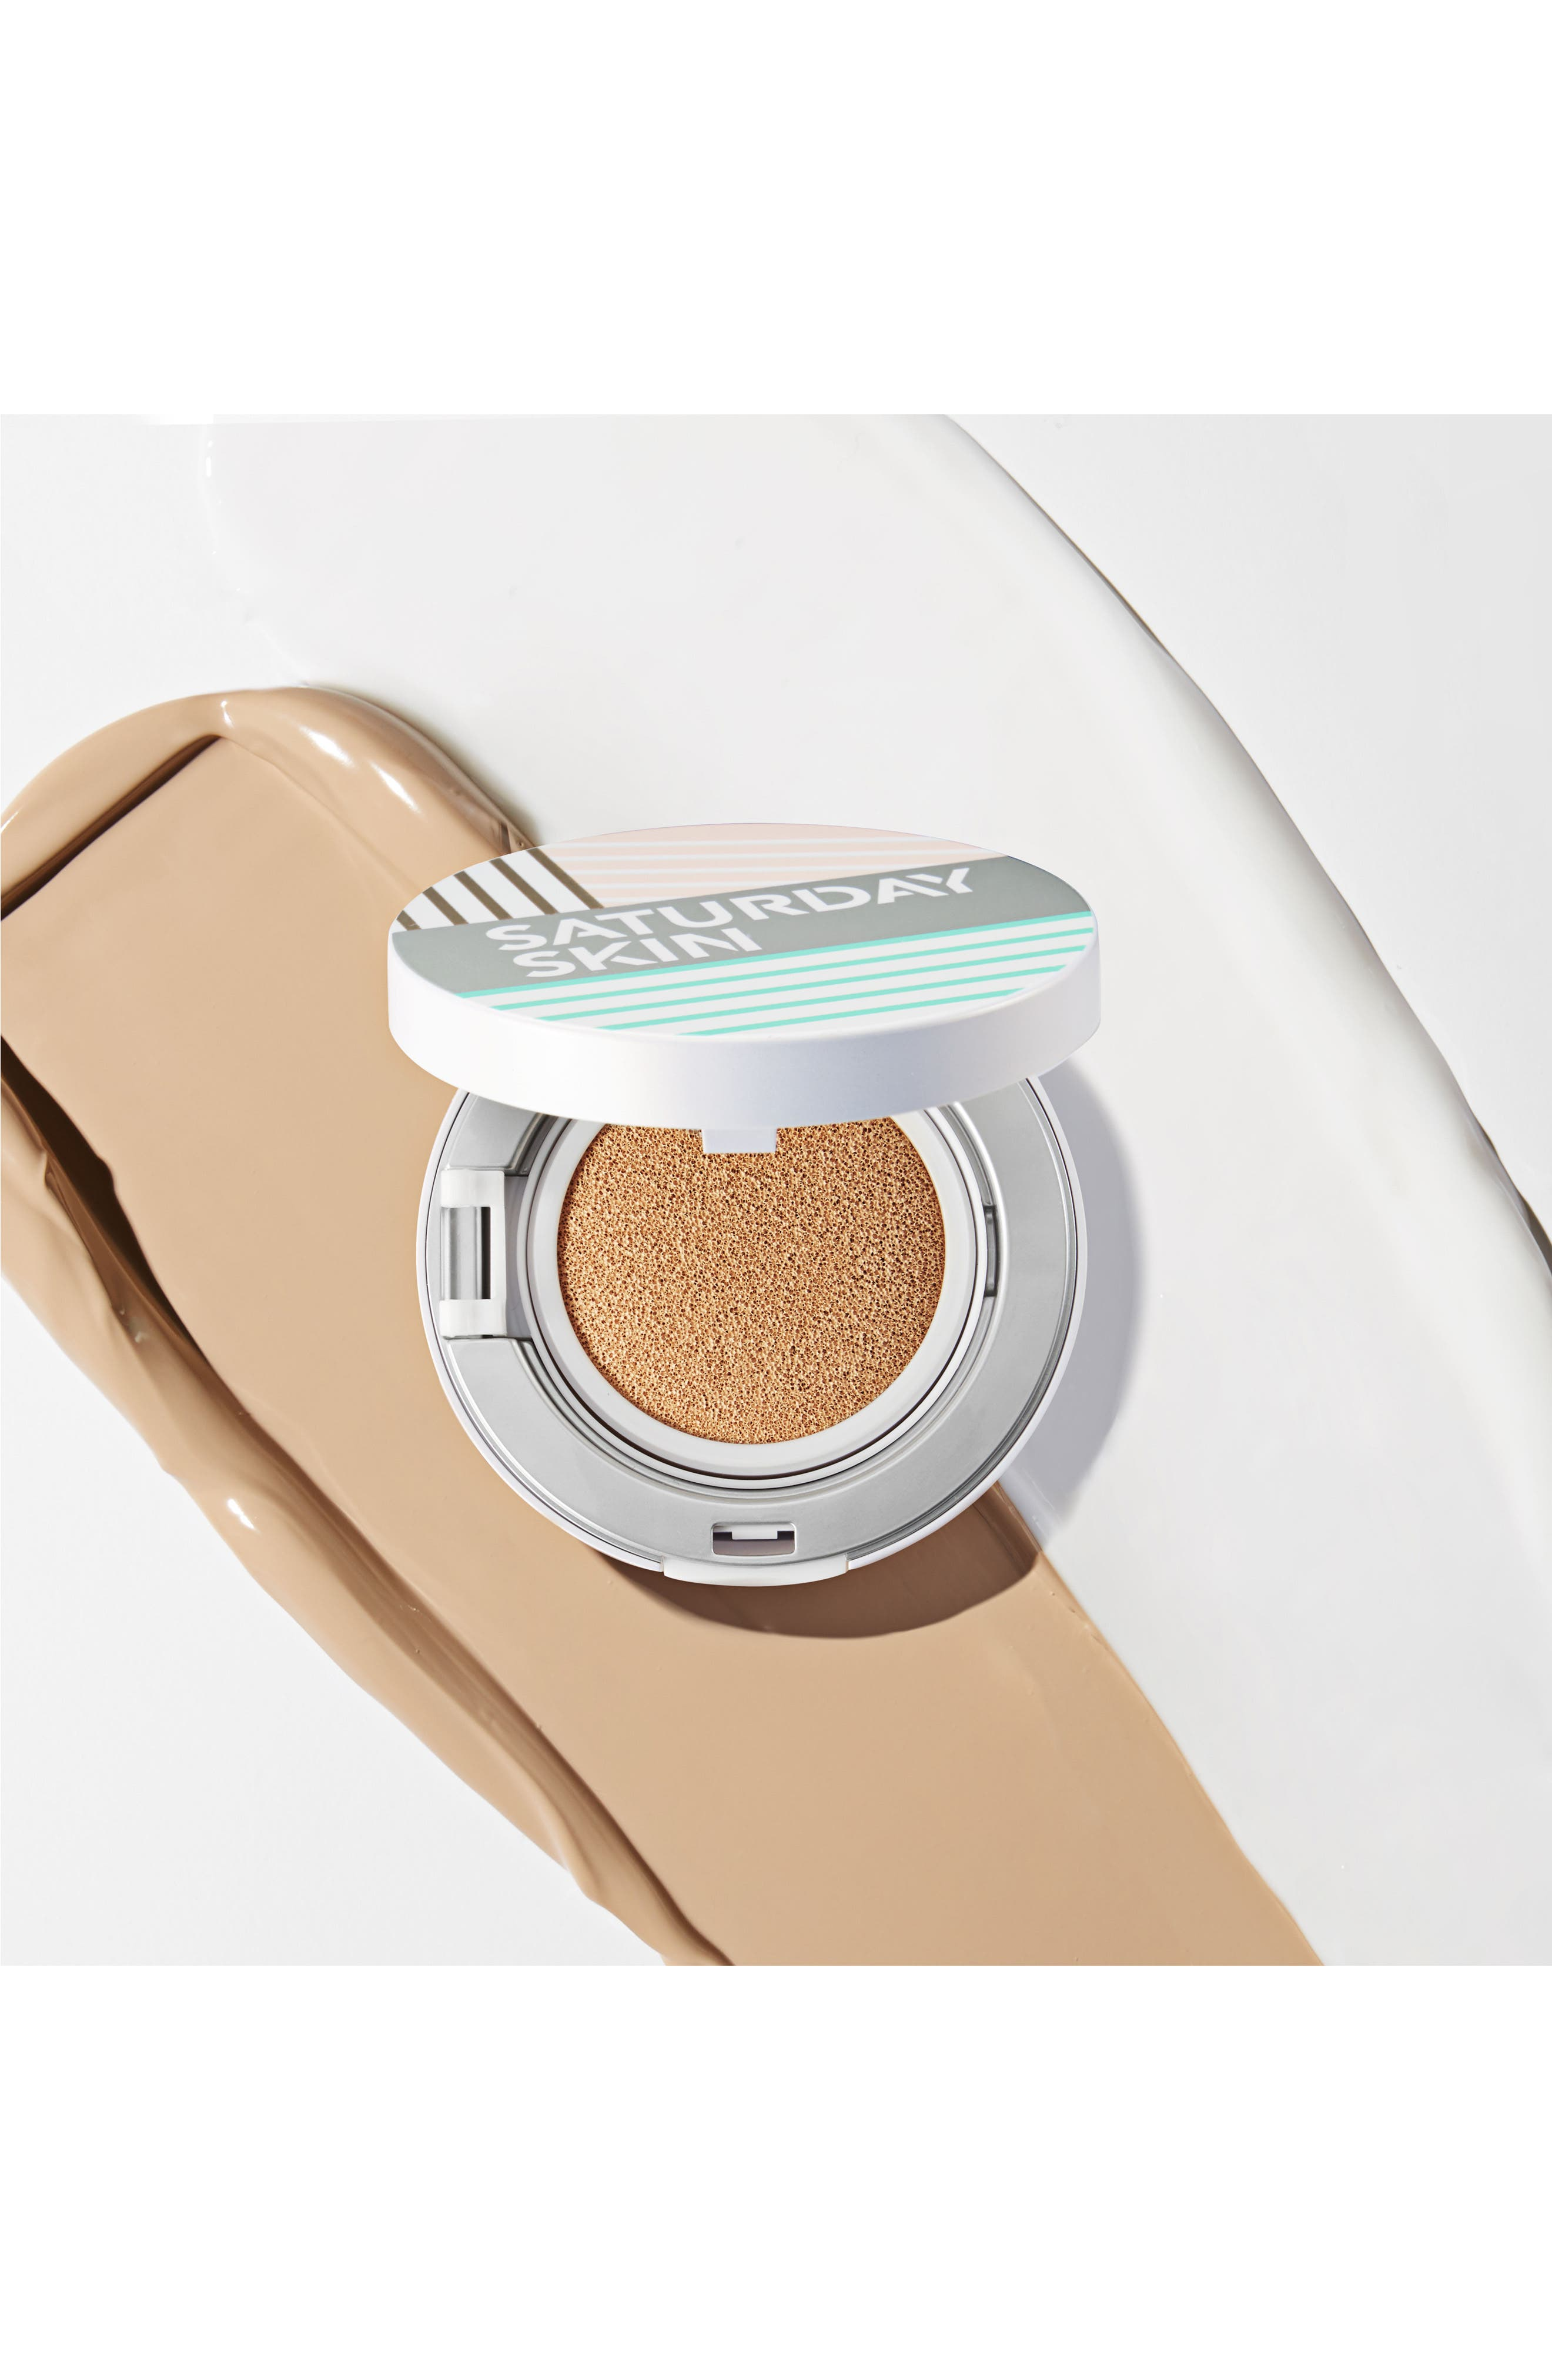 Alternate Image 2  - Saturday Skin All Aglow Sunscreen Perfection Cushion Compact SPF 50